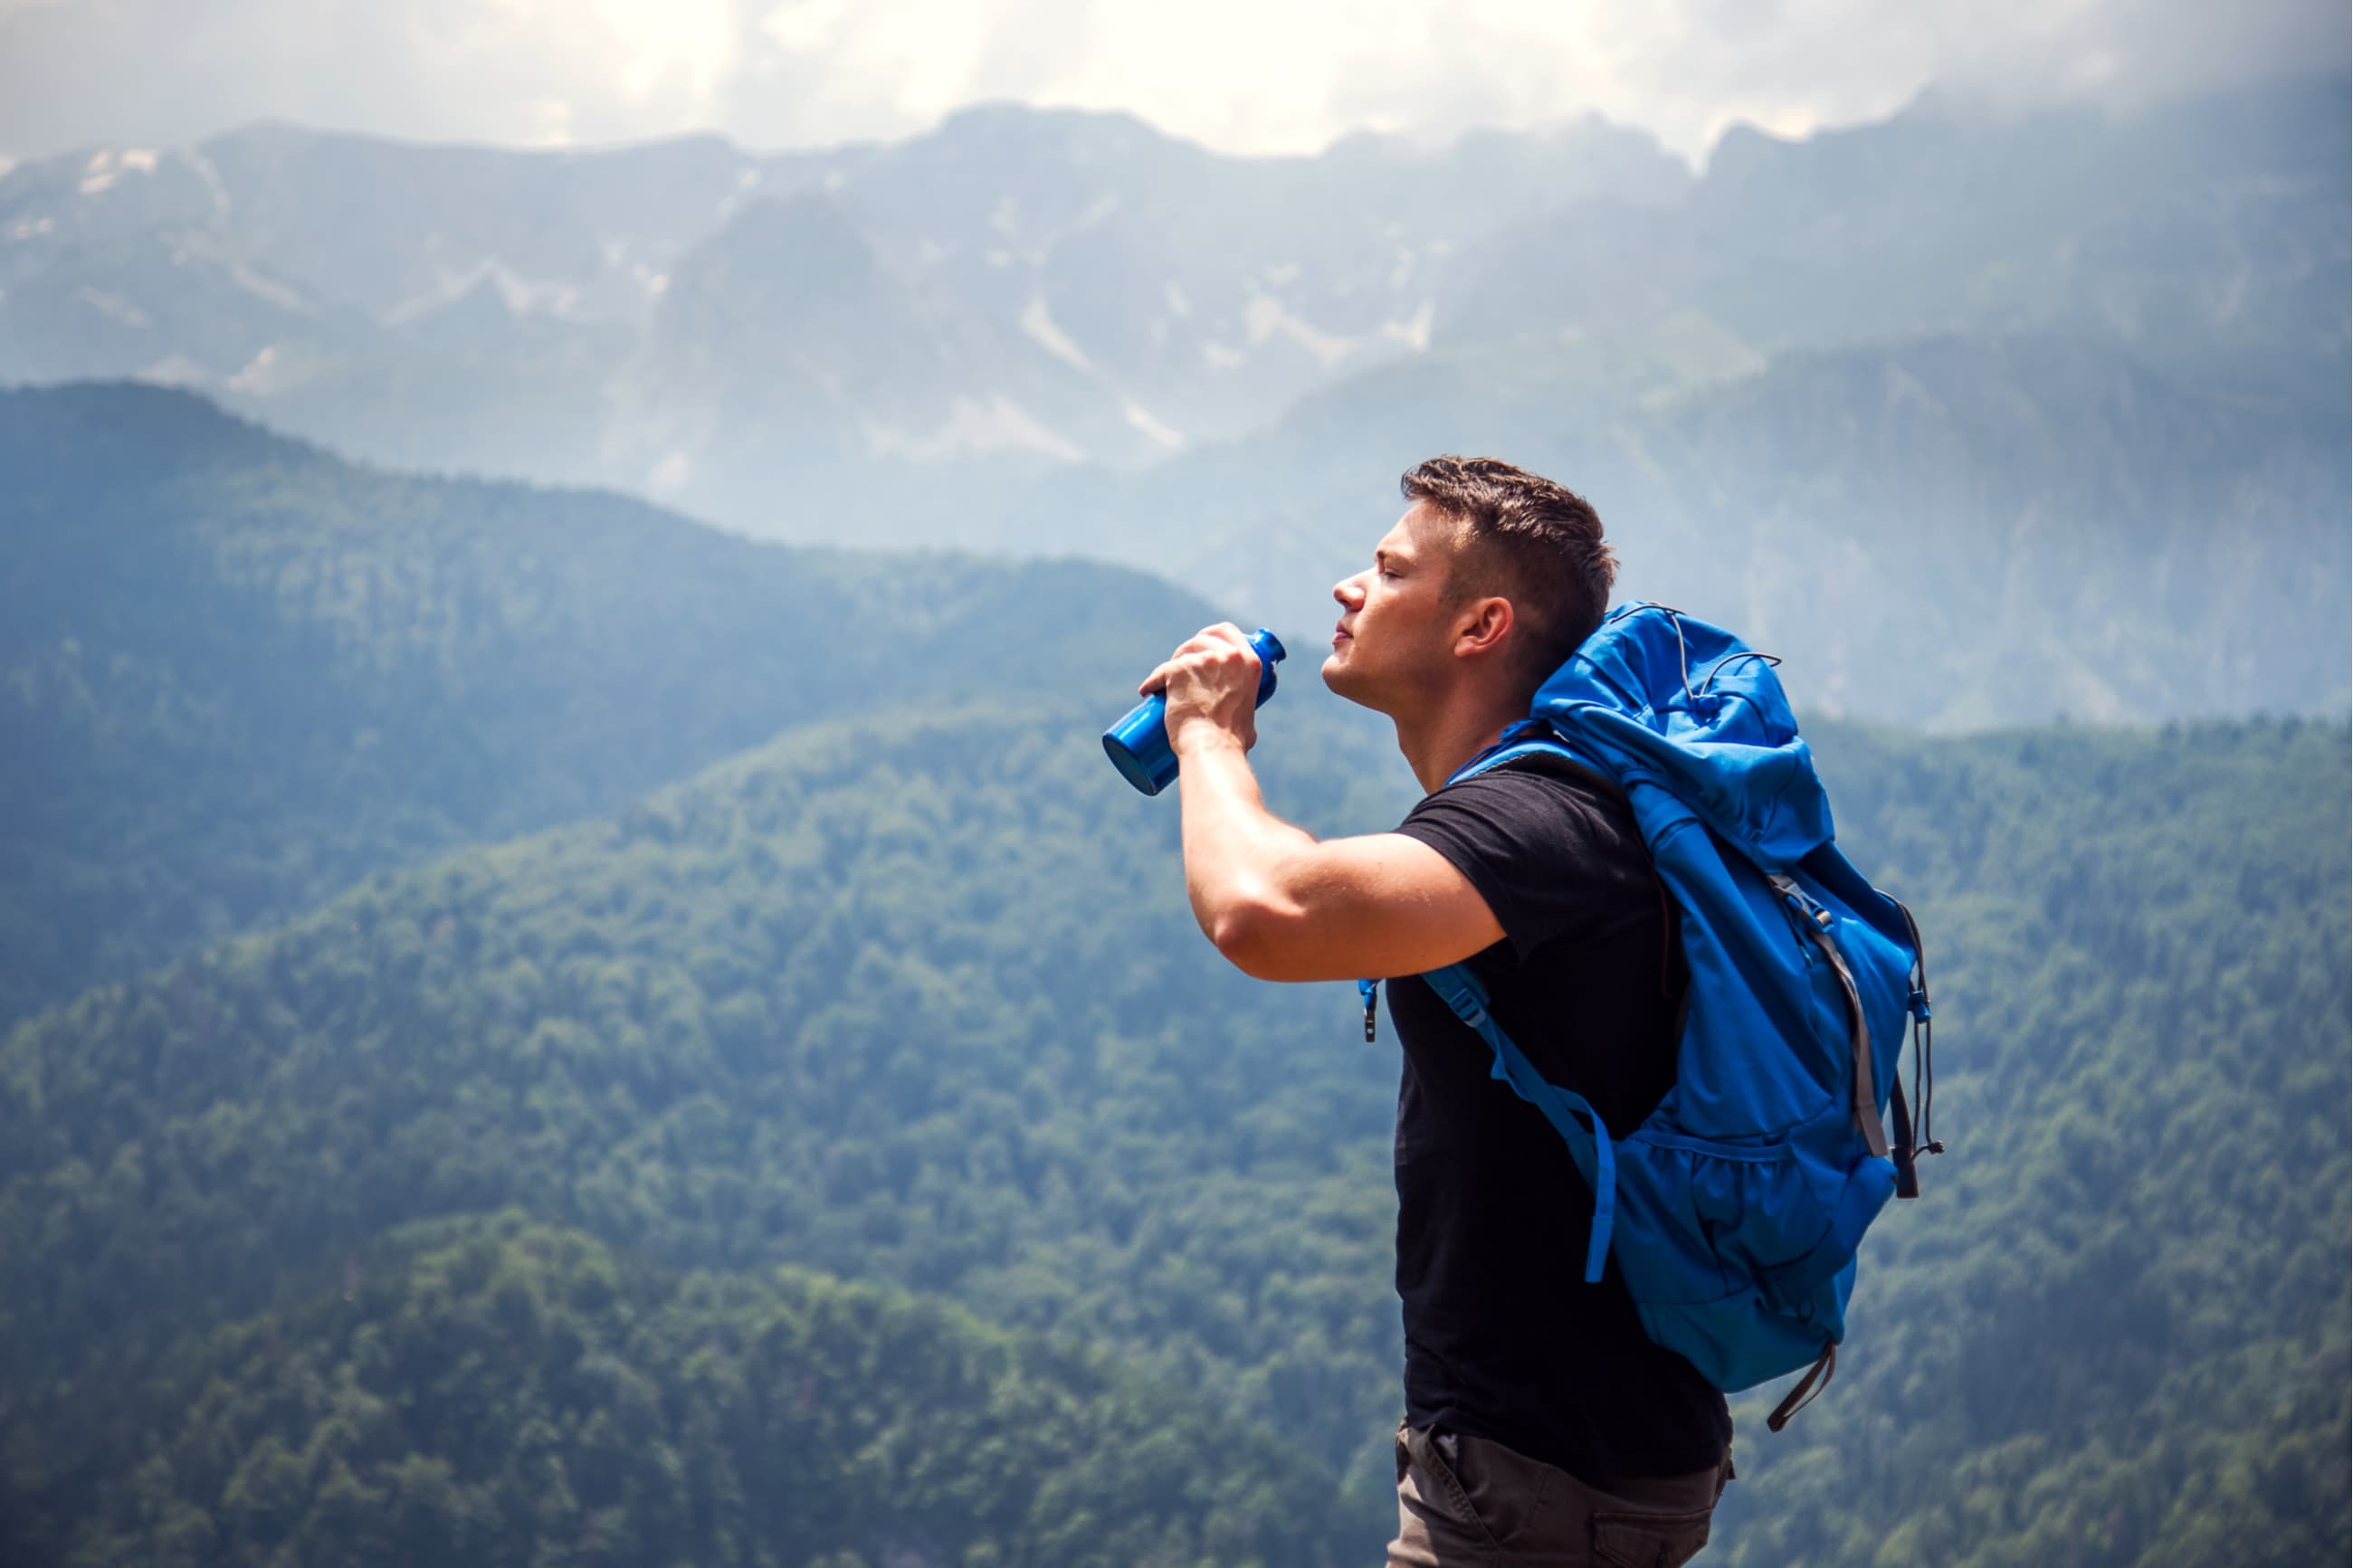 hiker drinking from a bottle of water at the top of a mountain with rolling hills in the background